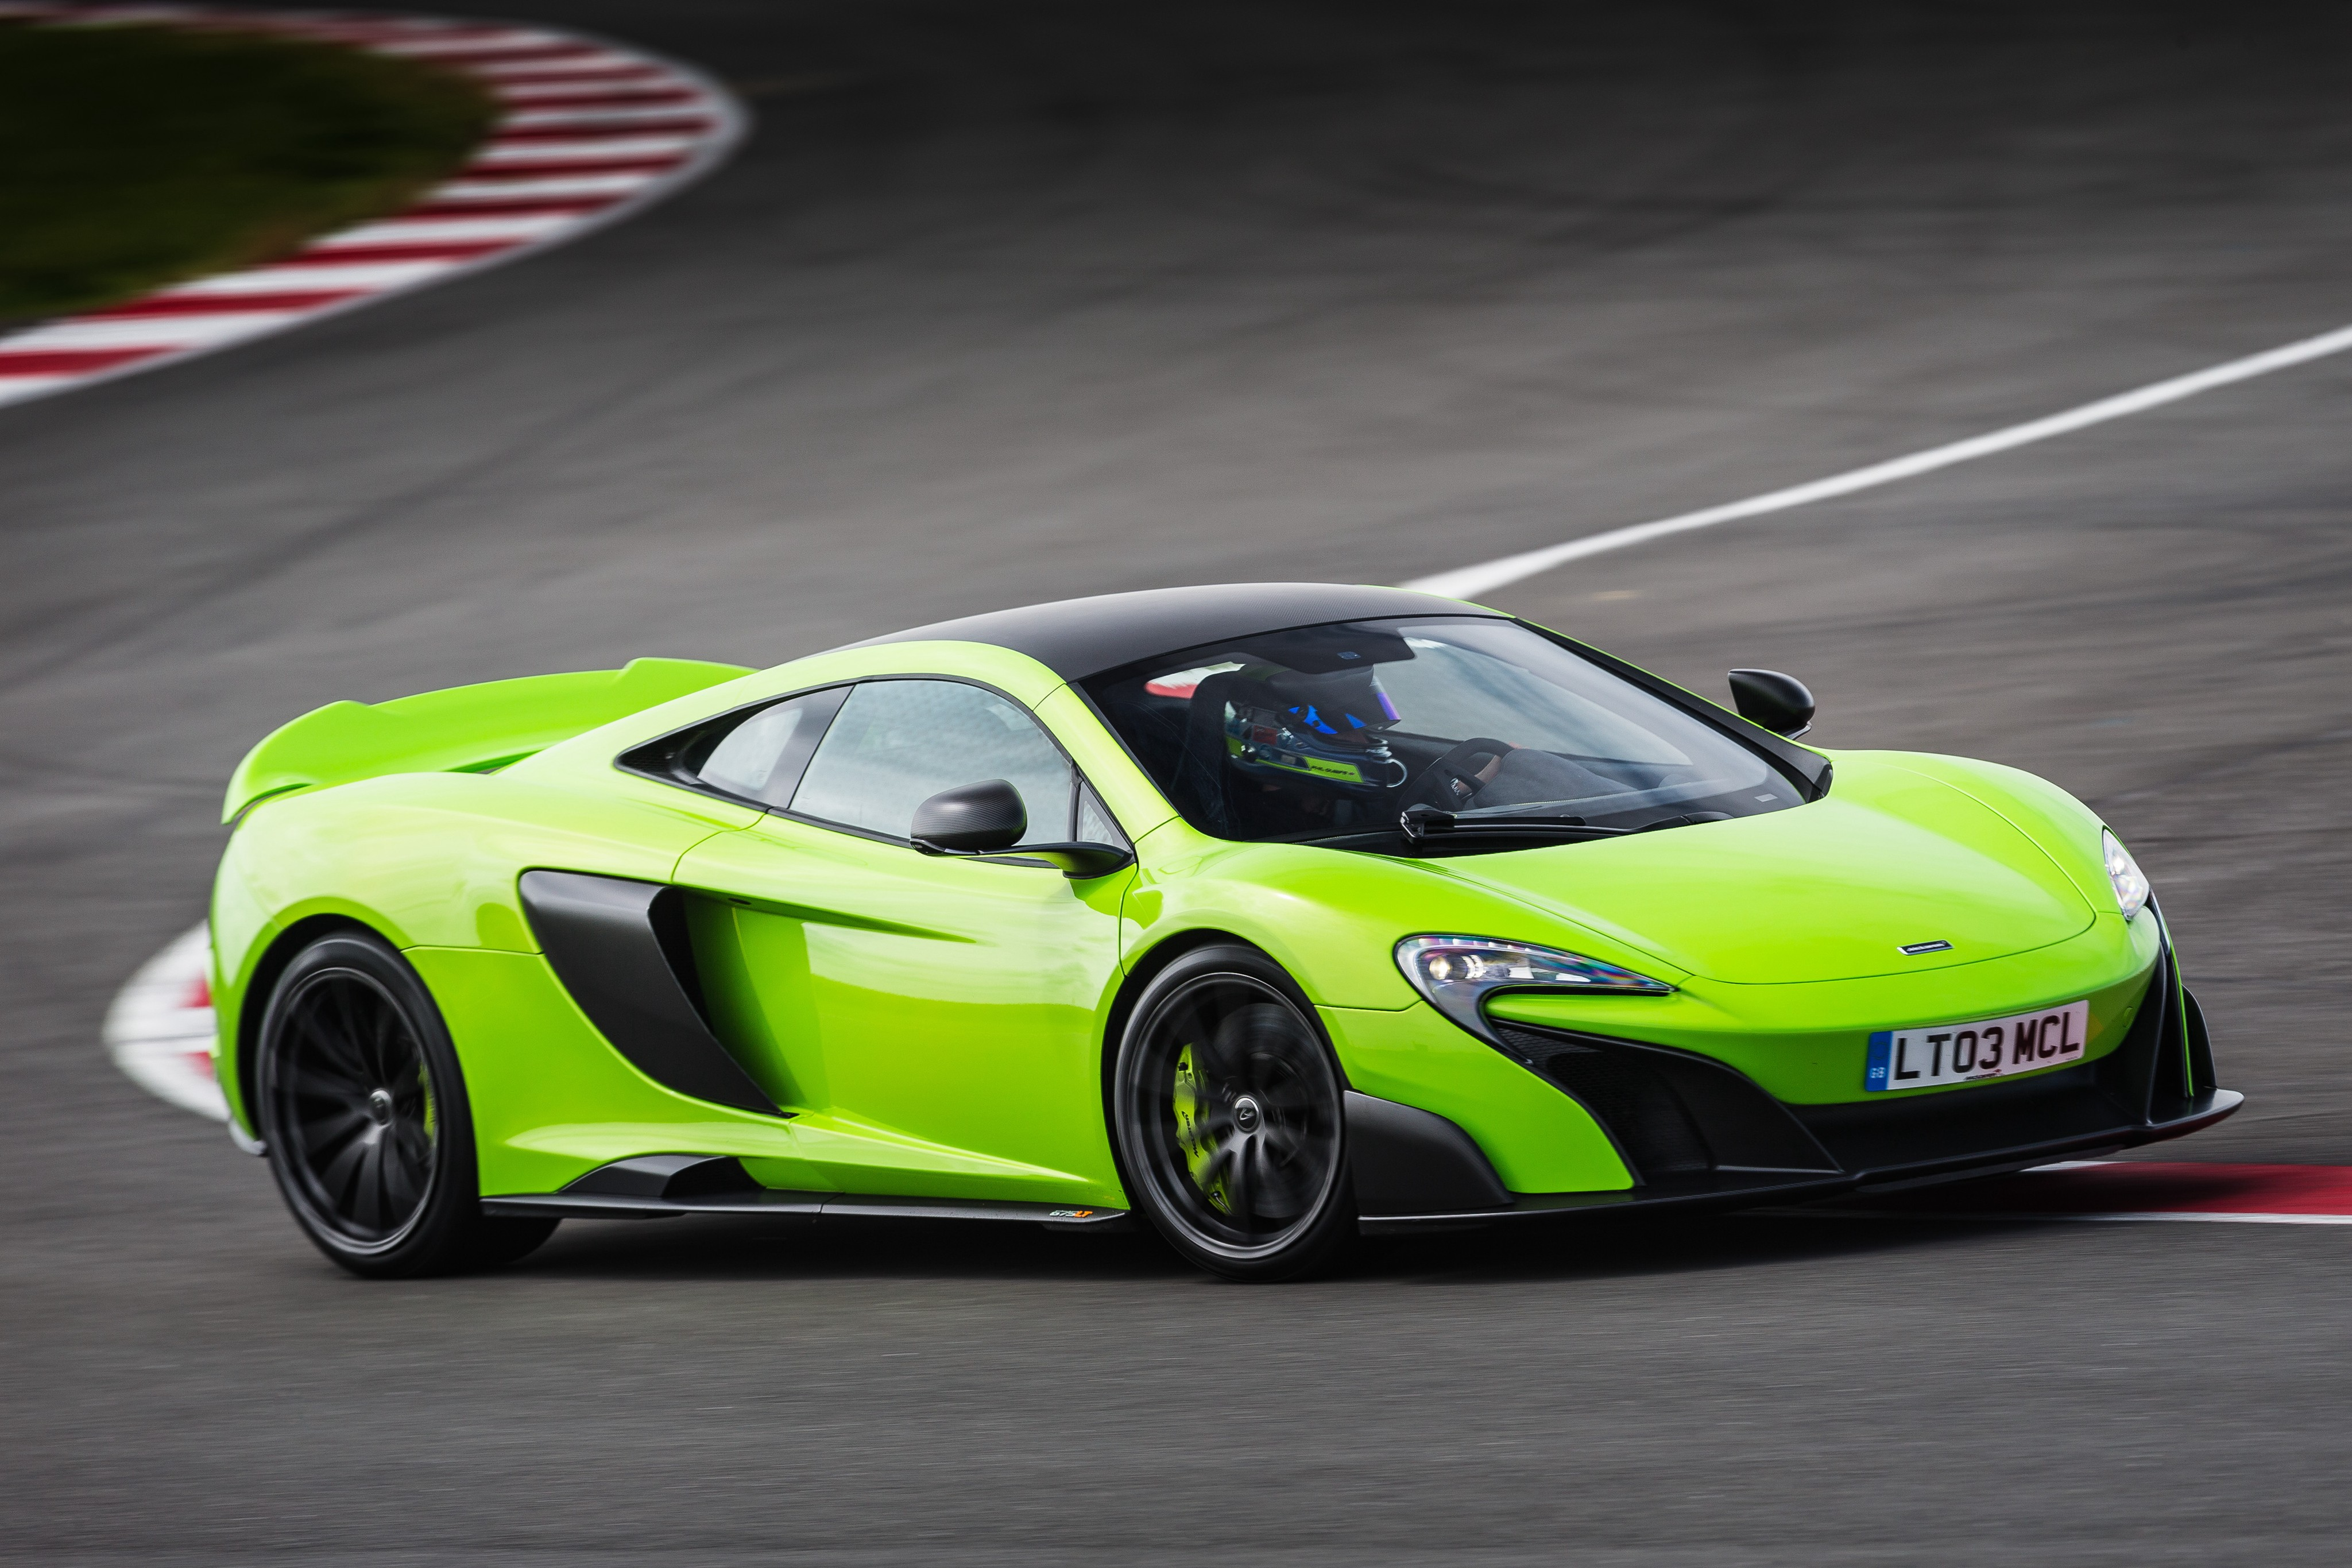 Porsche E Mobility besides Ford Bronco Aspen further 92971 Coordinate Measuring Machine Helps Race Car Manufacturer Make Precision Parts further Mclaren 675lt 2015 further Jamie Foxx Gets Wicked Rezvani Tank. on sports car components